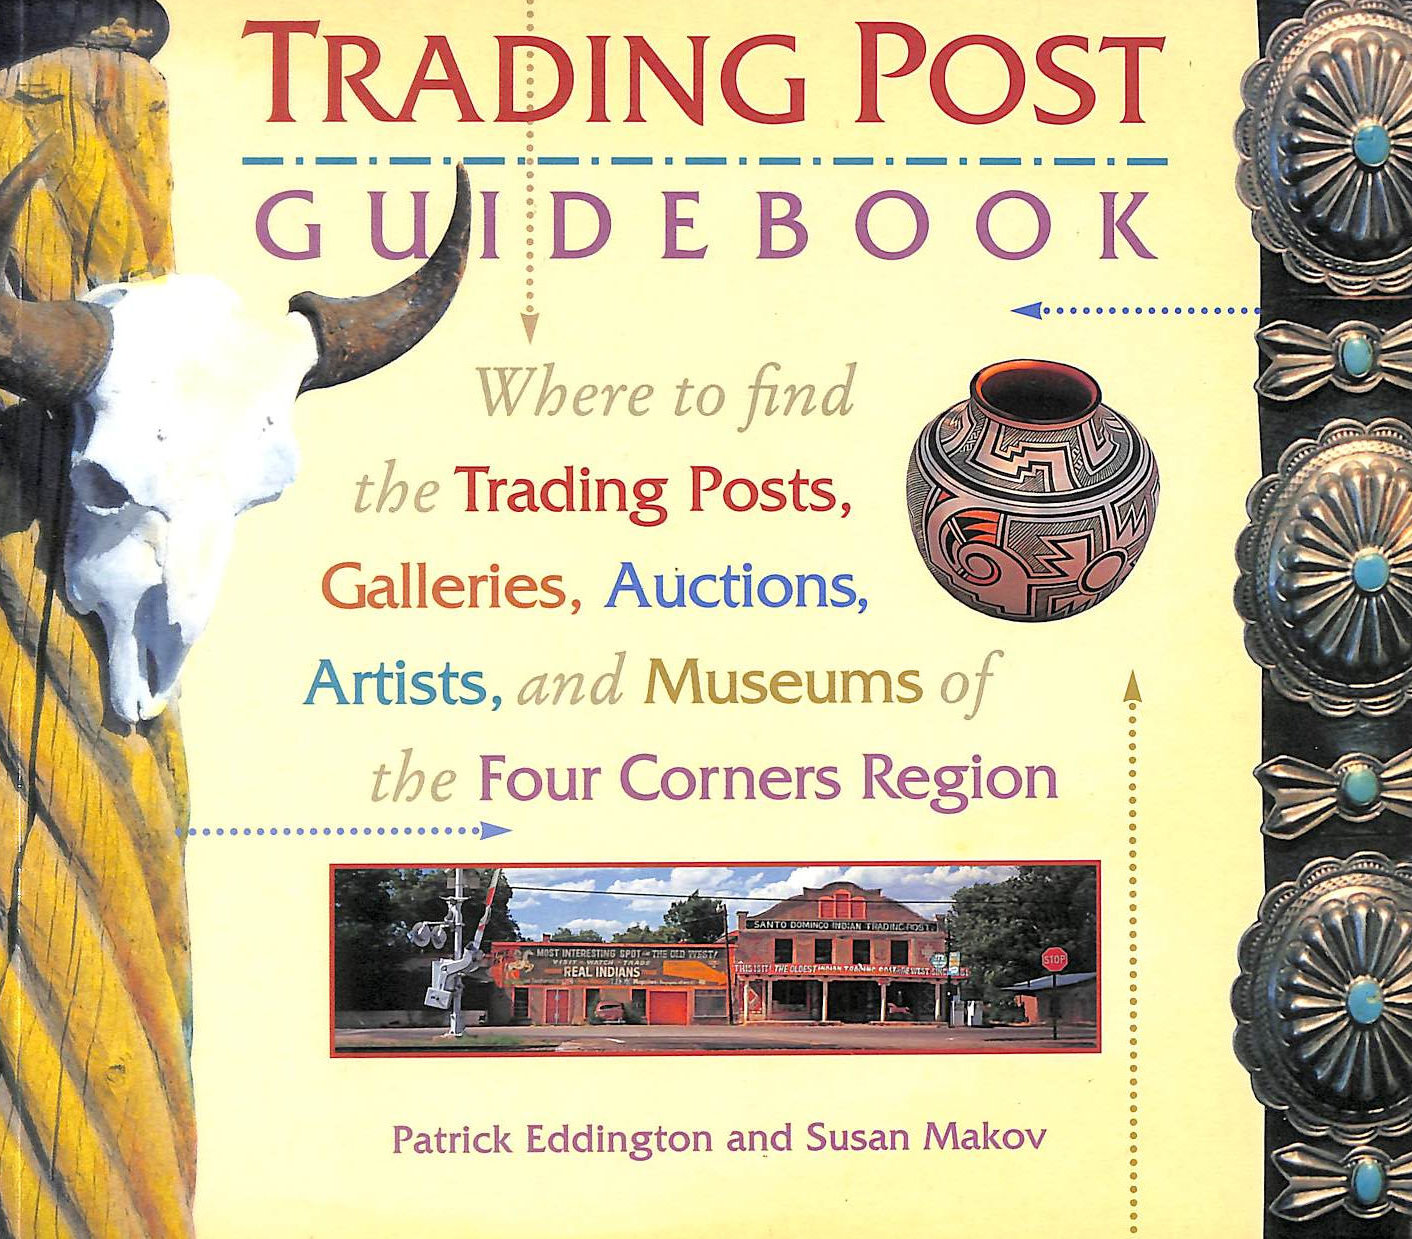 Image for Trading Post Guidebook: Where to Find the Trading Posts, Galleries, Auctions, Artists, and Museums of the Four Corners Region